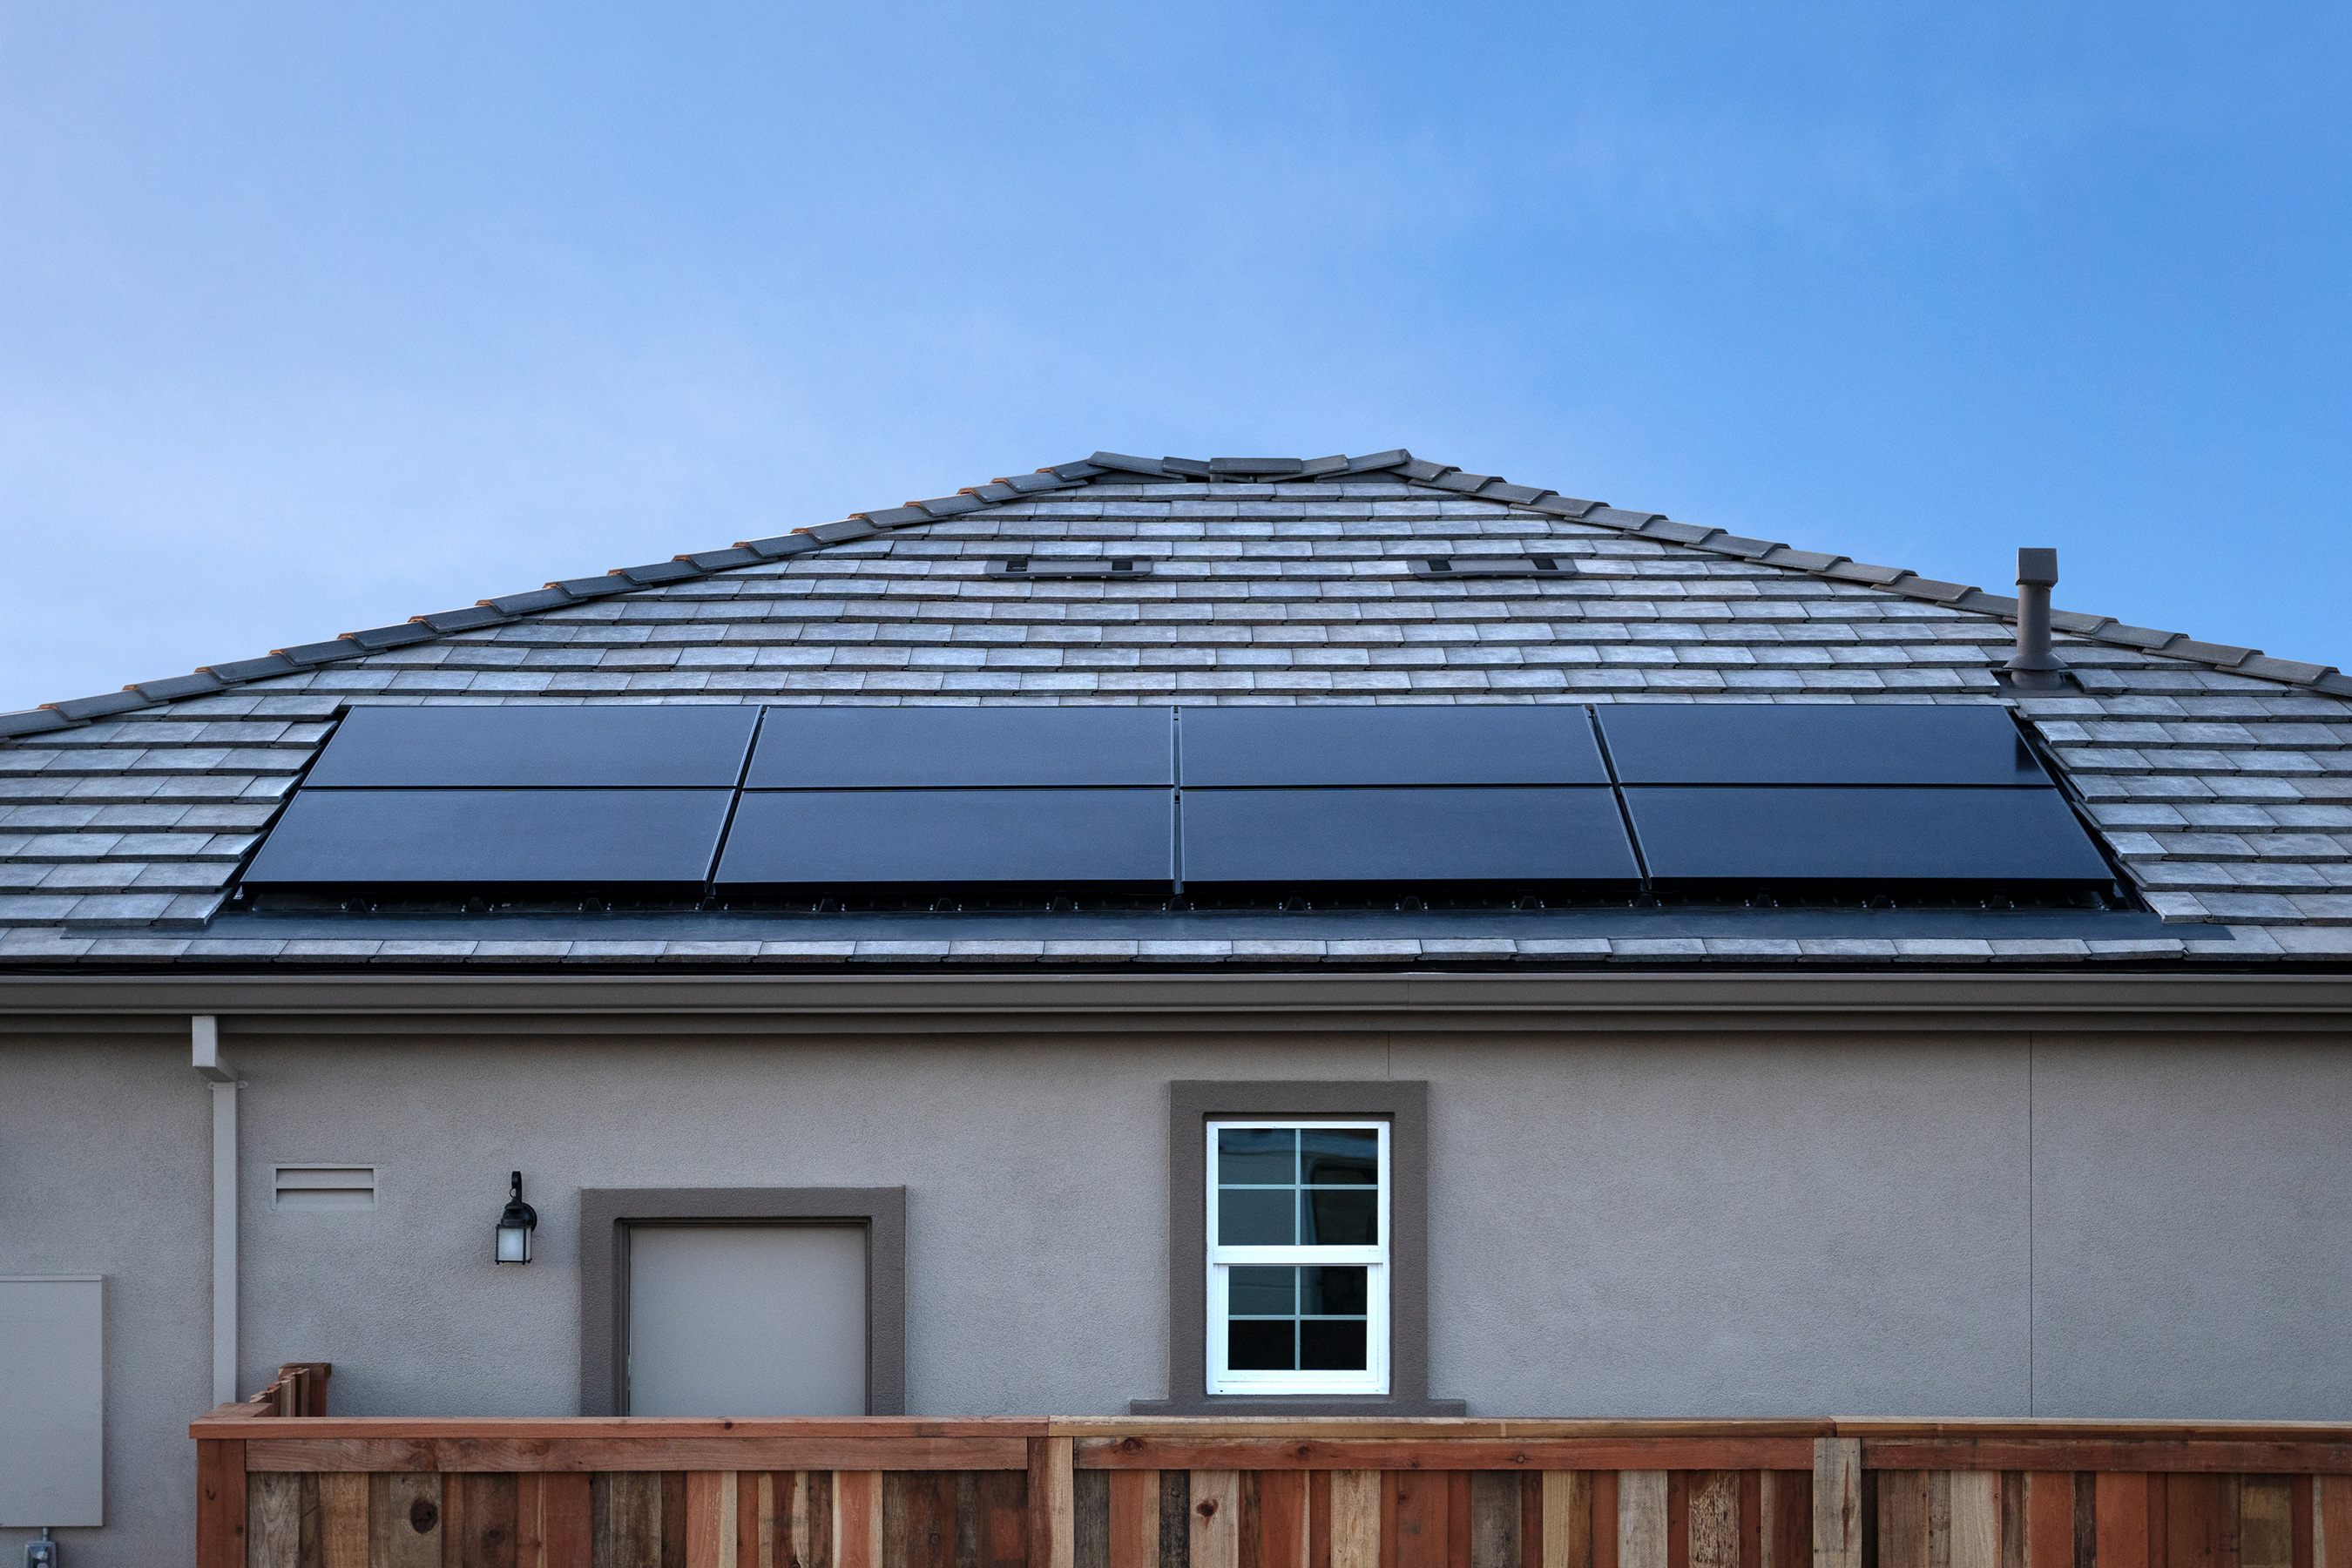 Our OneRoof™ system fits seamlessly with the rest of the roof for a sleek, low-profile look with virtually no visible parts. Except for those money-saving solar panels.